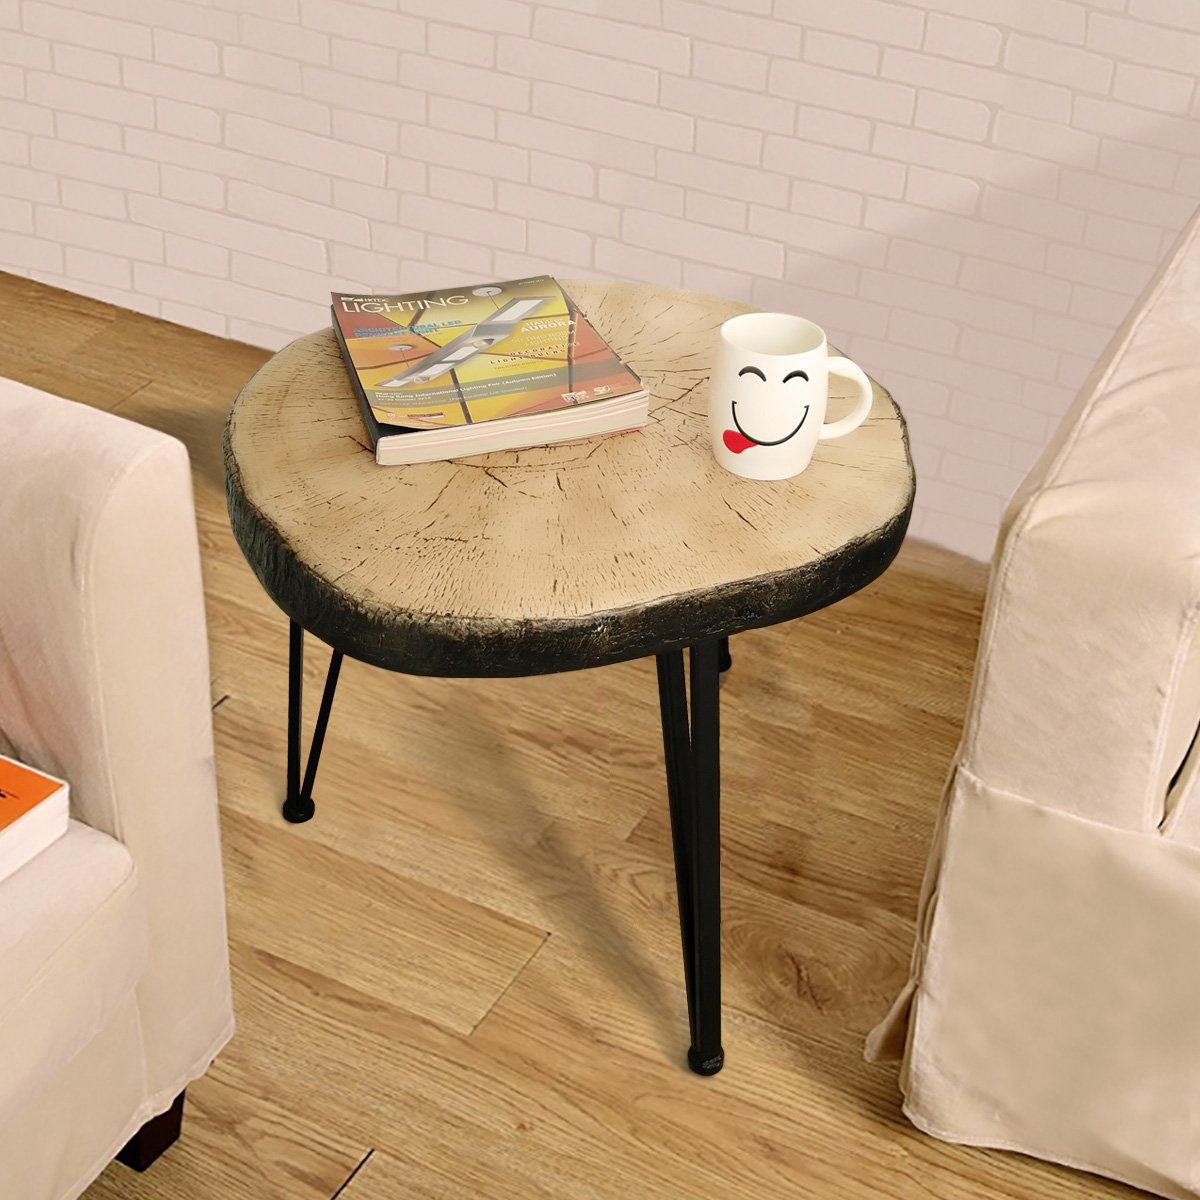 Suneon End Tables, Imitation Wood(Magnesium Oxide) Coffee Side Table for Living Room,Bedroom,Balcony,Garden and Office by SUNEON (Image #3)